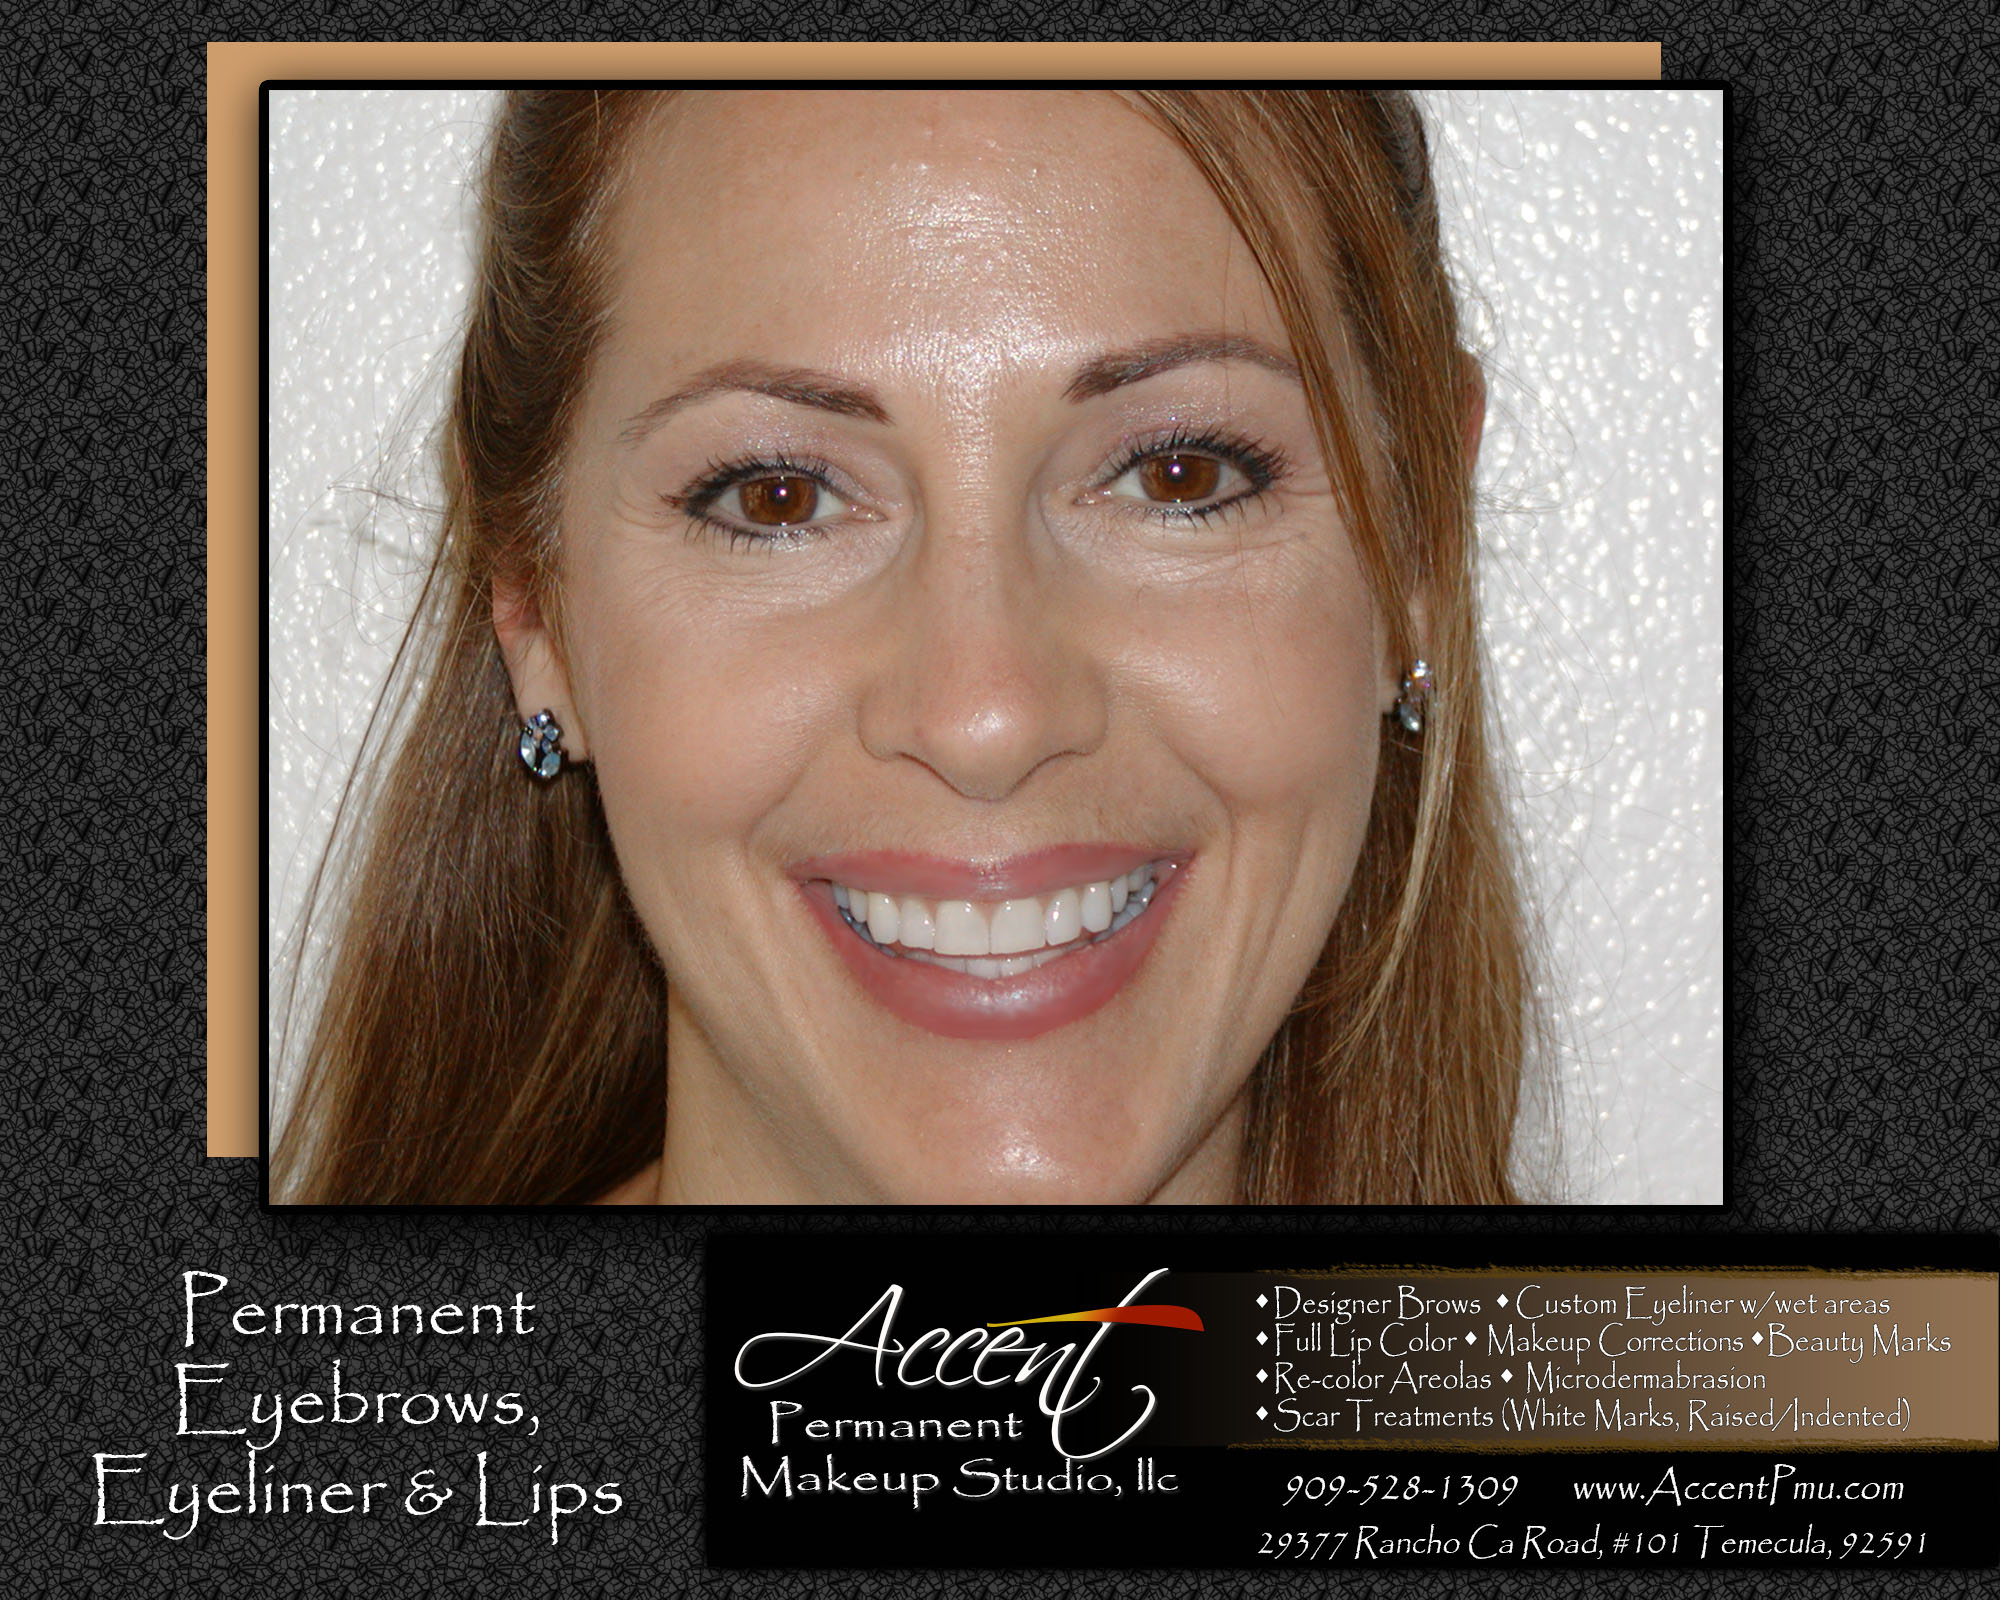 Accent Permanent Makeup Eyebrows, Eyeliner, Lips